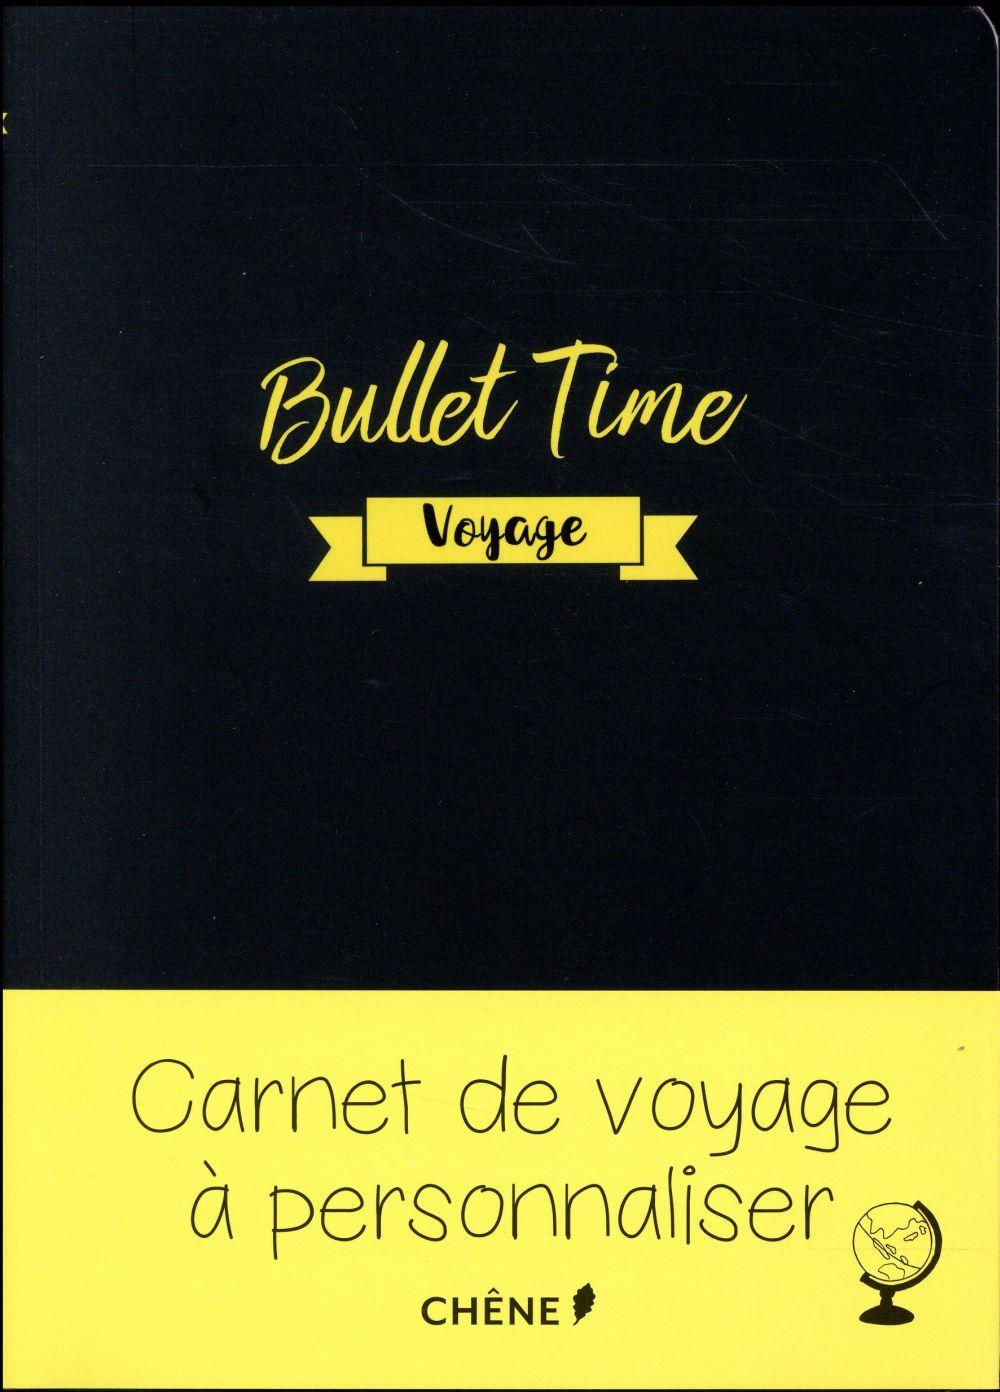 Journal de voyage bullet time  - Collectif